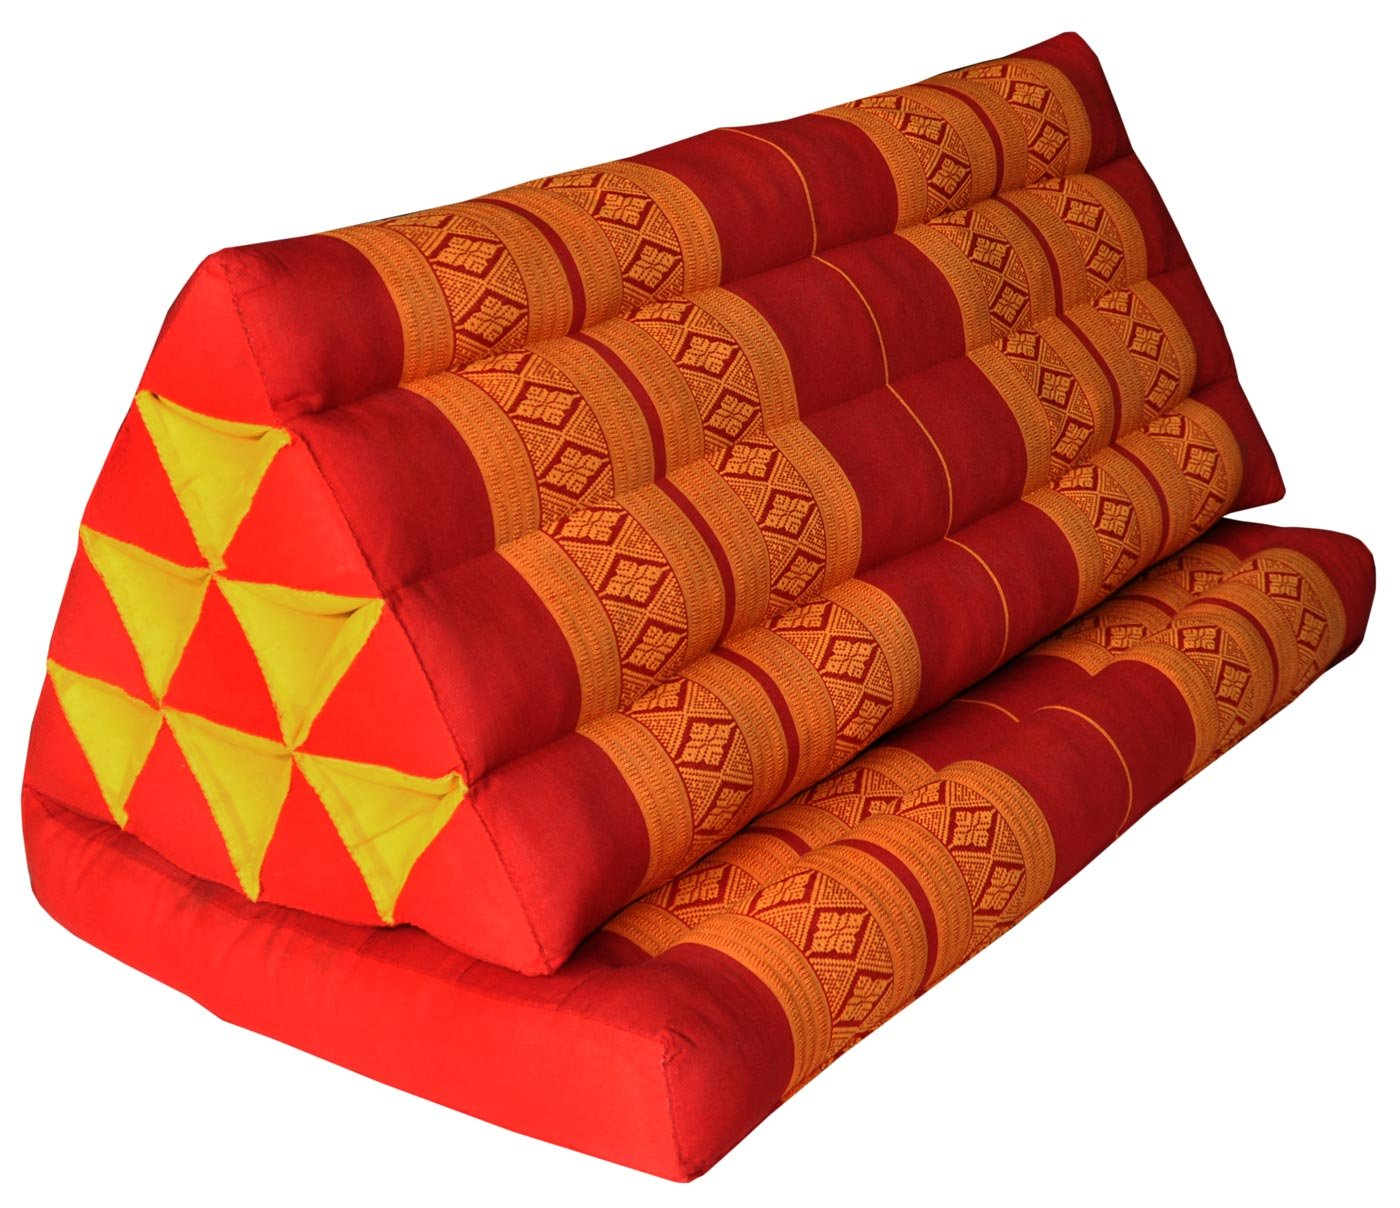 Thai triangle cushion XXL, with 1 folding seat, red/orange, sofa, relaxation, beach, pool, meditation, yoga, made in Thailand. (81016) by Wilai GmbH